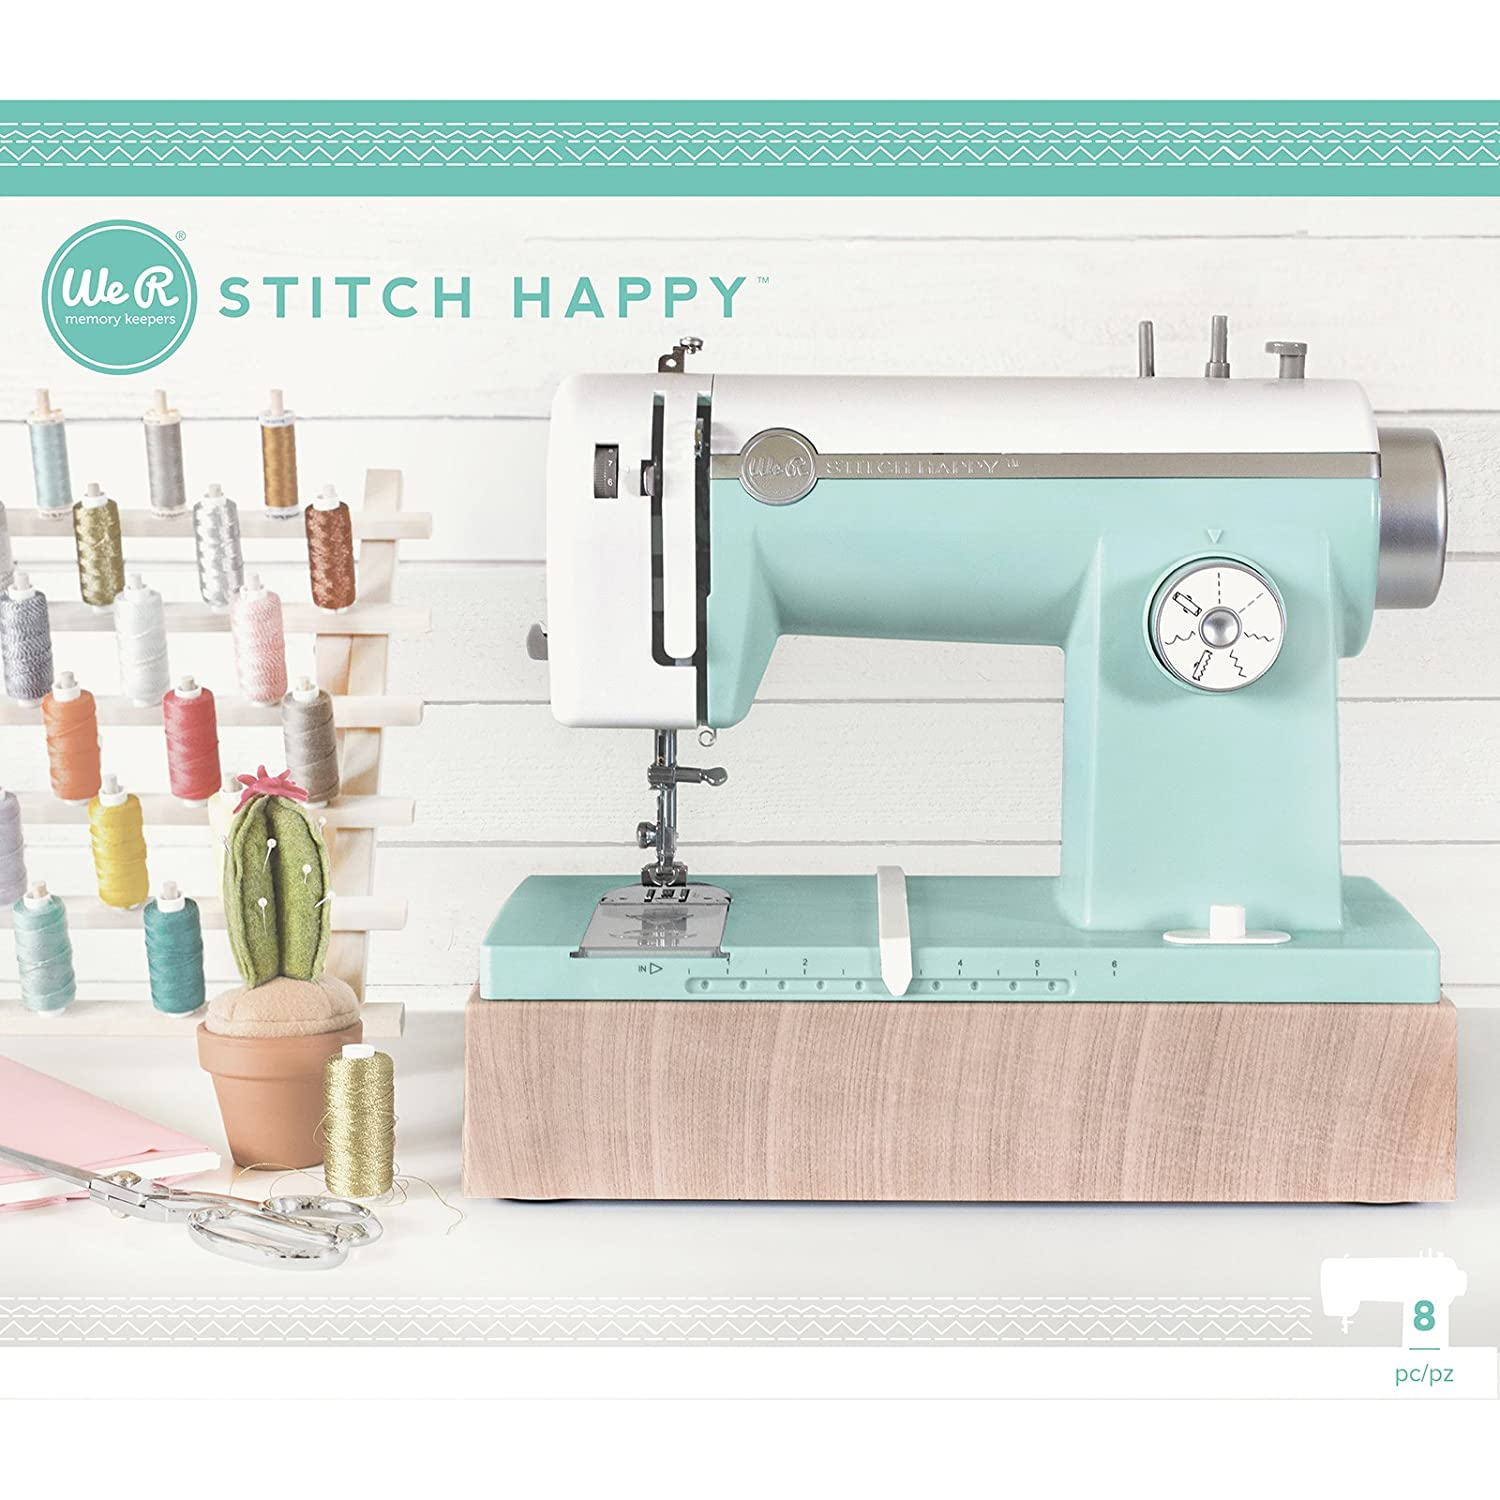 Stitch Happy Sewing Machine by We R Memory Keepers | Mint American Crafts 663128